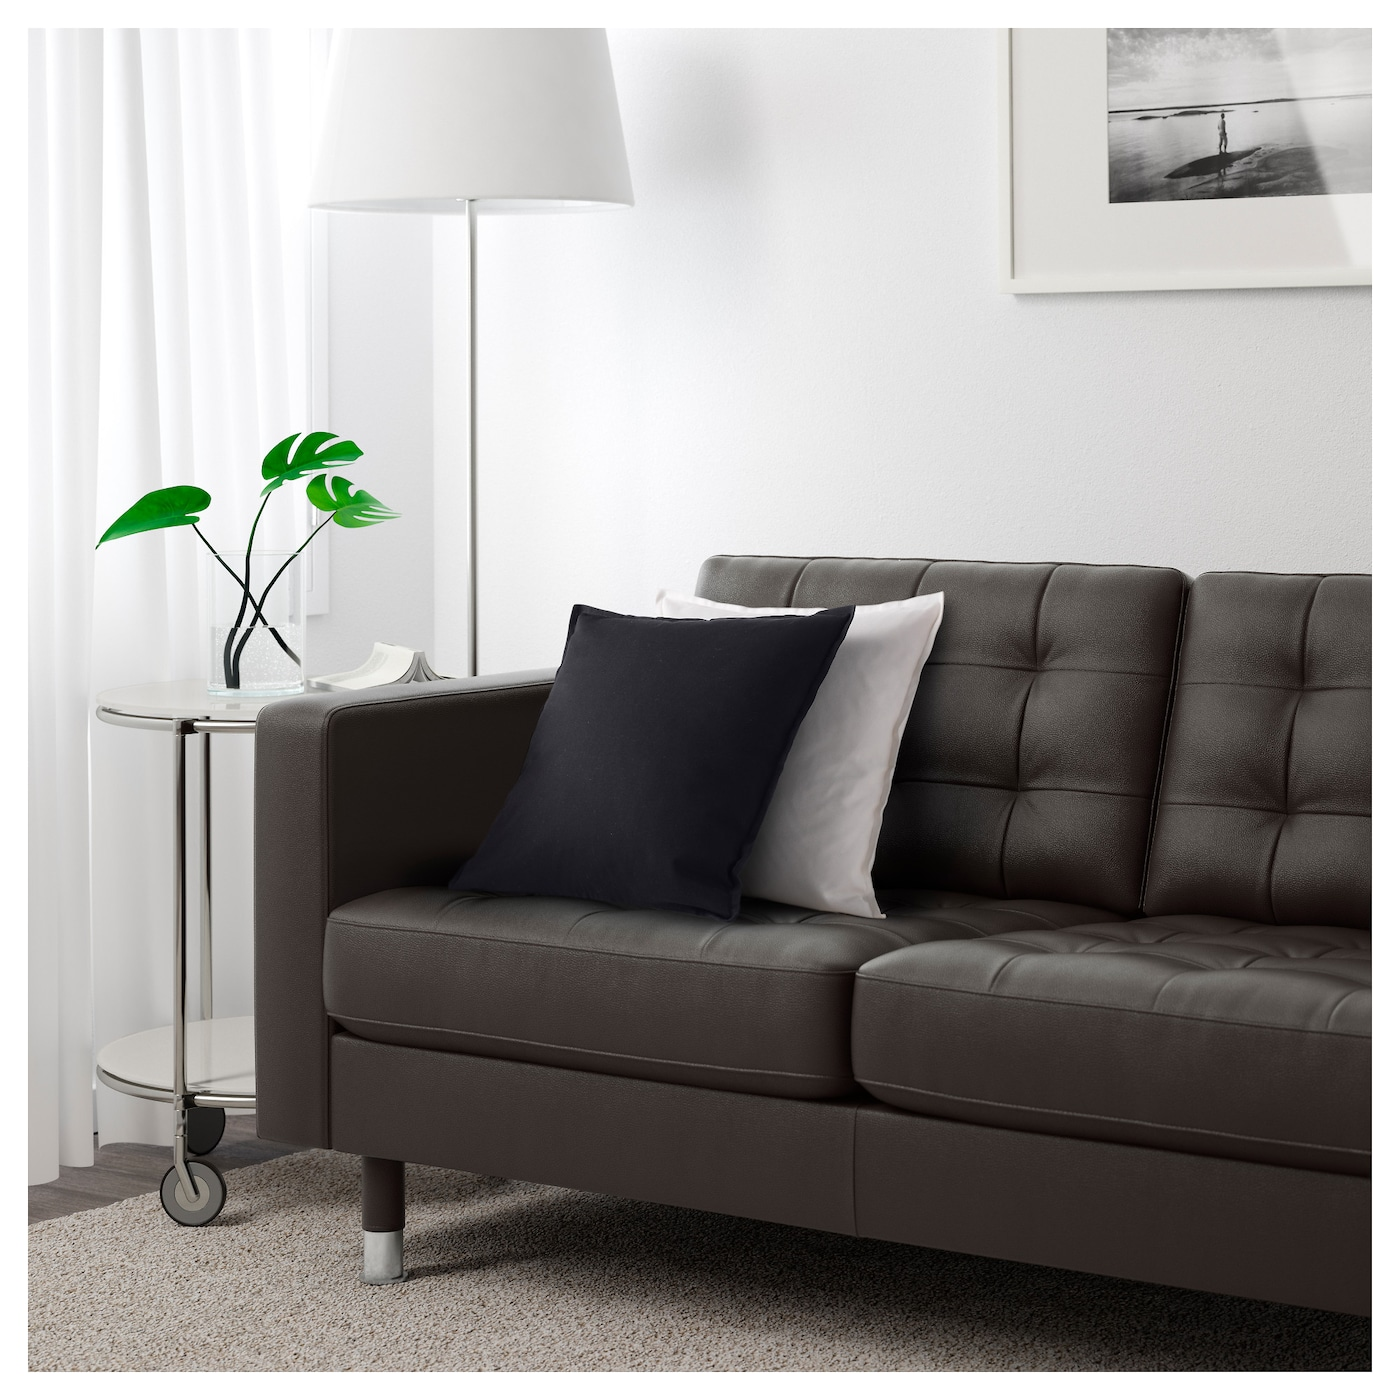 LANDSKRONA 4 seat sofa With chaise longue grann bomstad dark brown